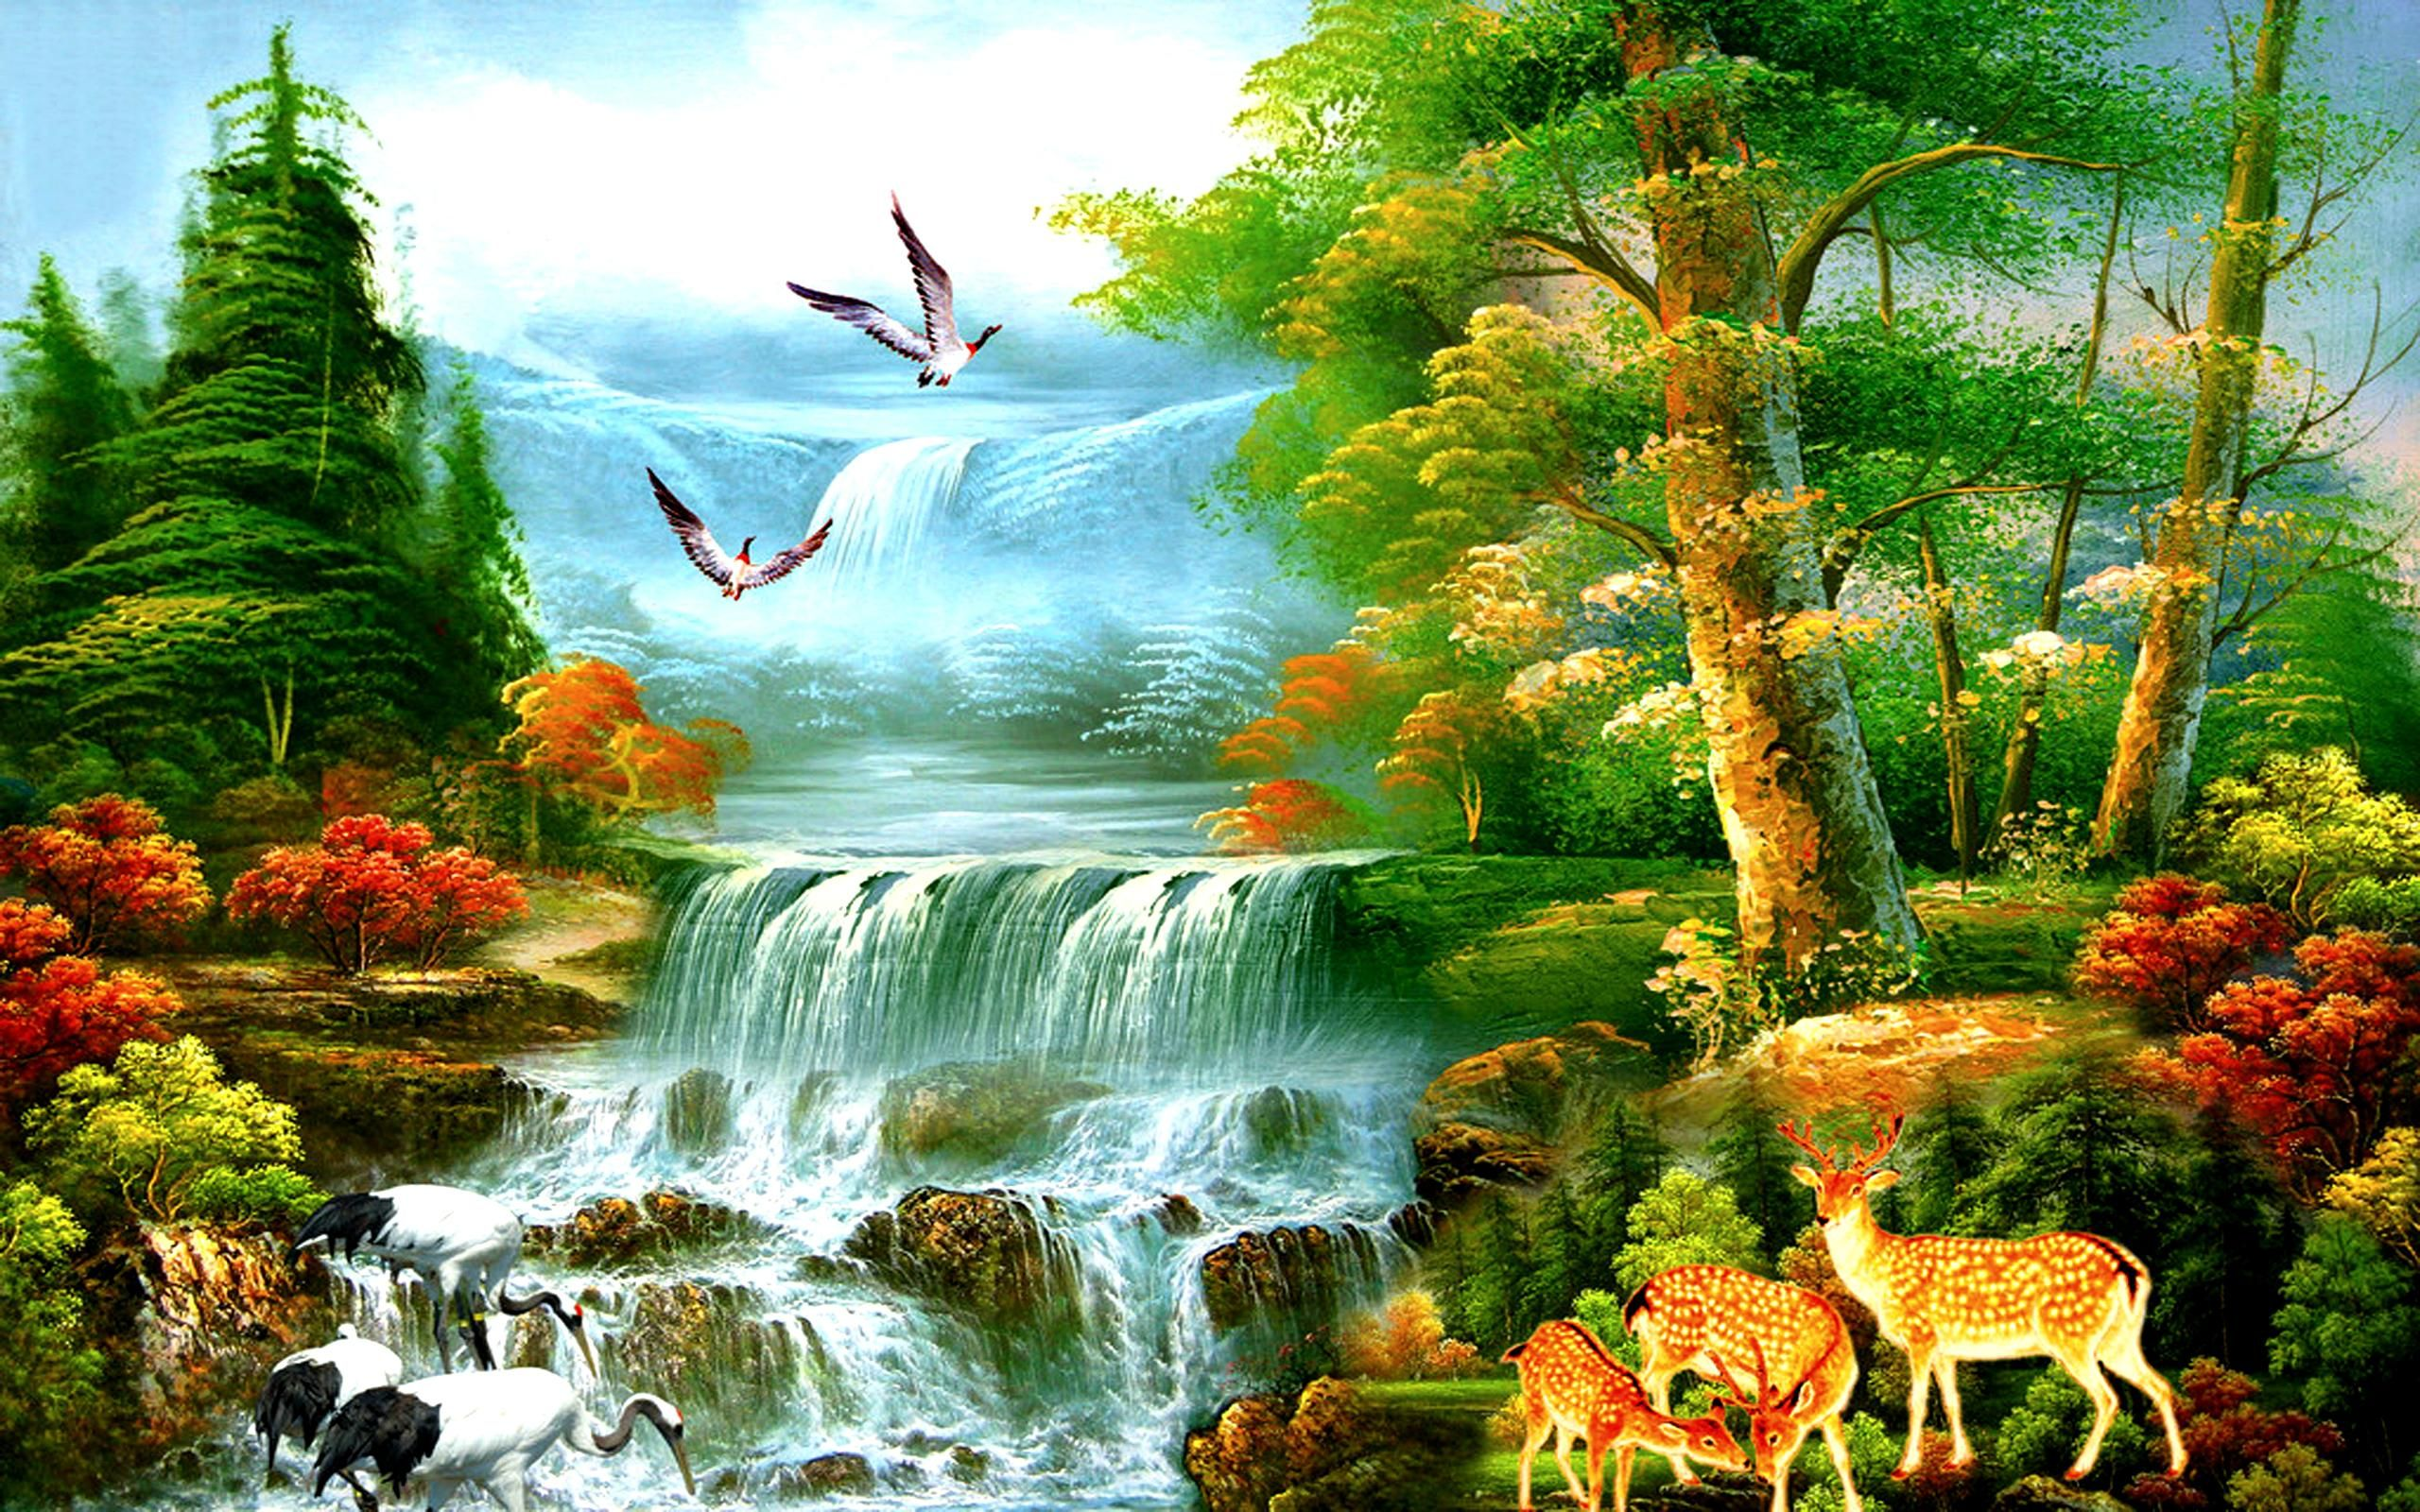 Paradise wallpaper 100504 hd wallpapers paradise wanna life - Paradise pictures backgrounds ...